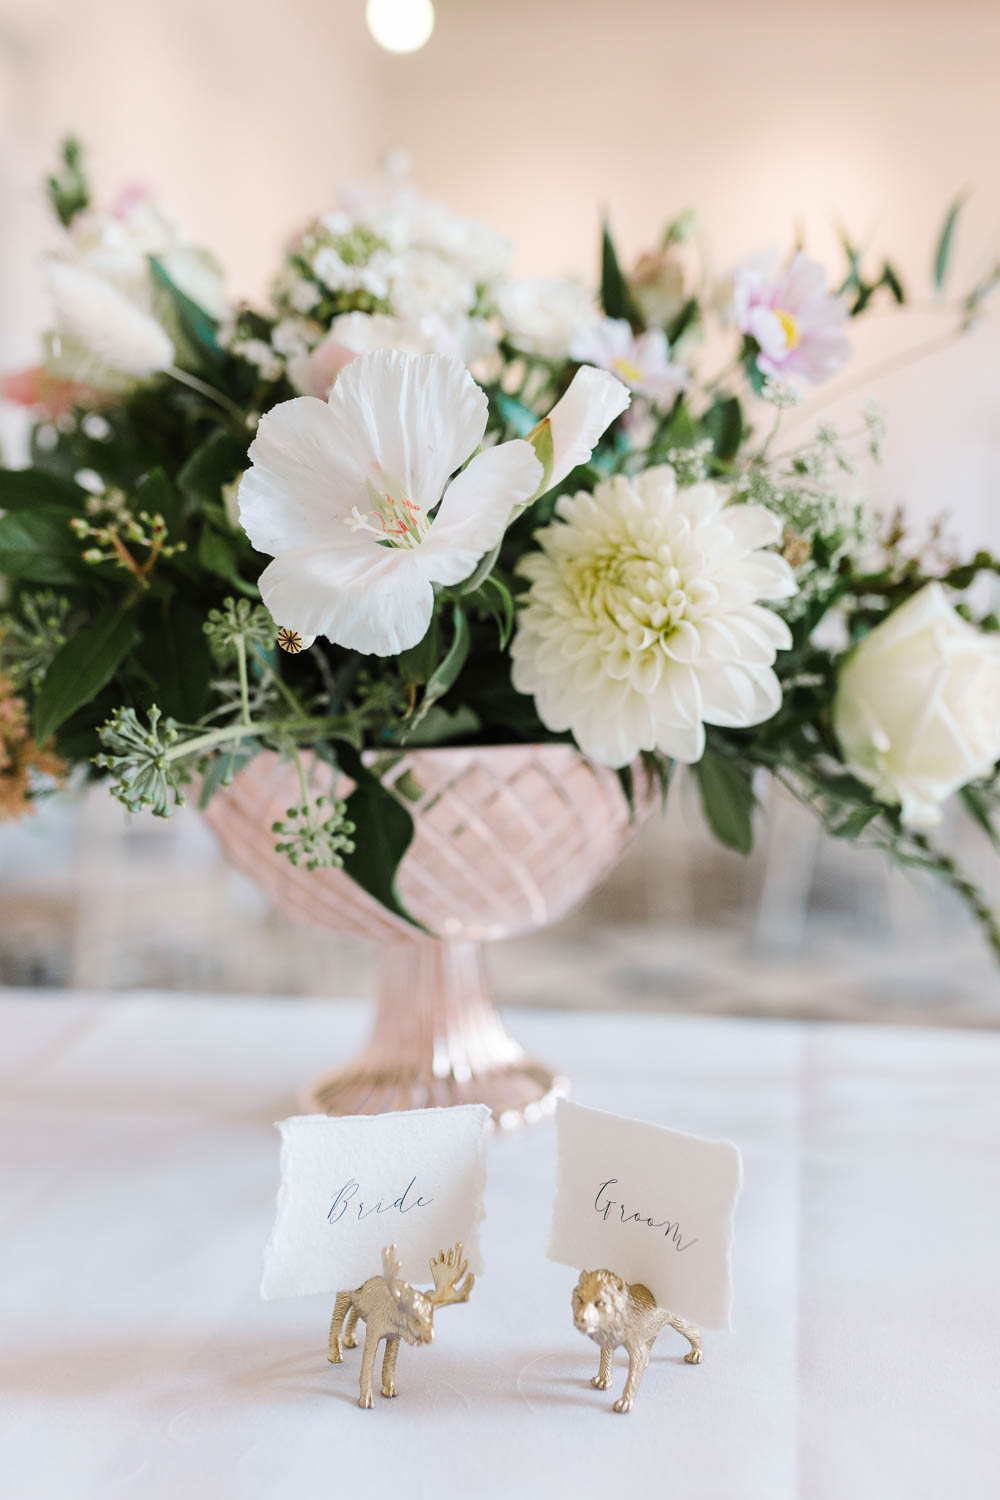 Painted Animal Place Name Cards Calligraphy Compton Verney Wedding Danielle Smith Photography